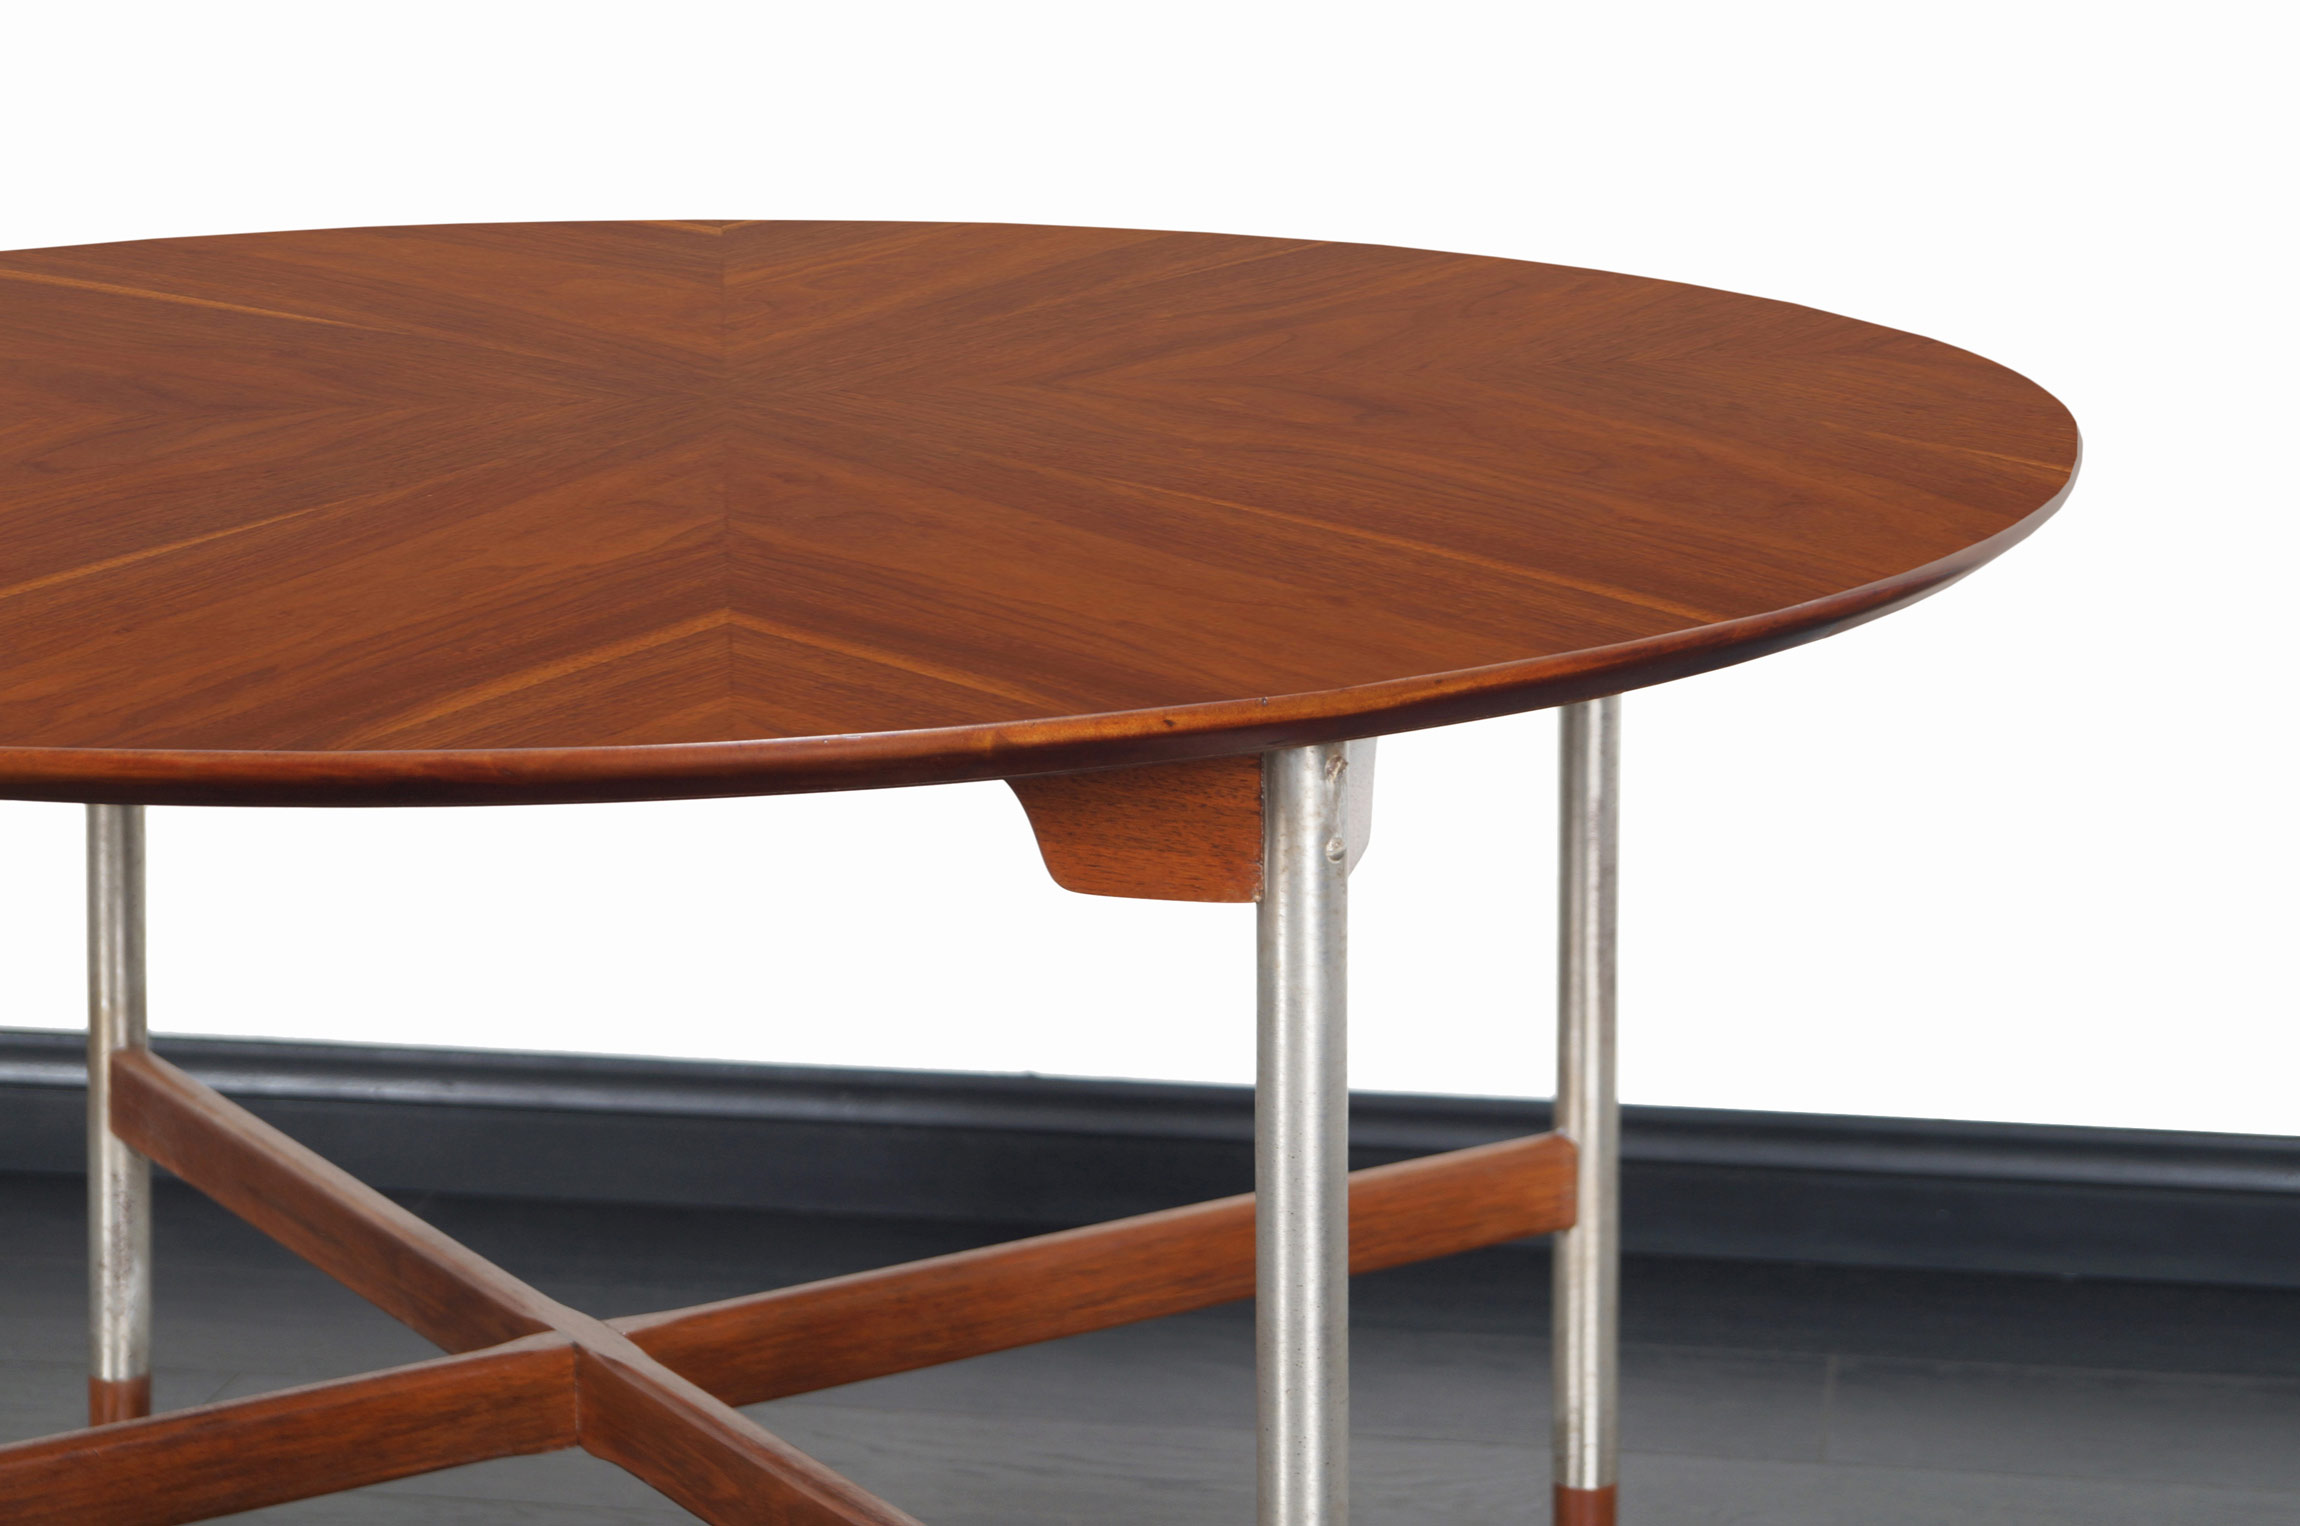 Danish Walnut and Brushed Steel Table Attributed to Arne Vodder